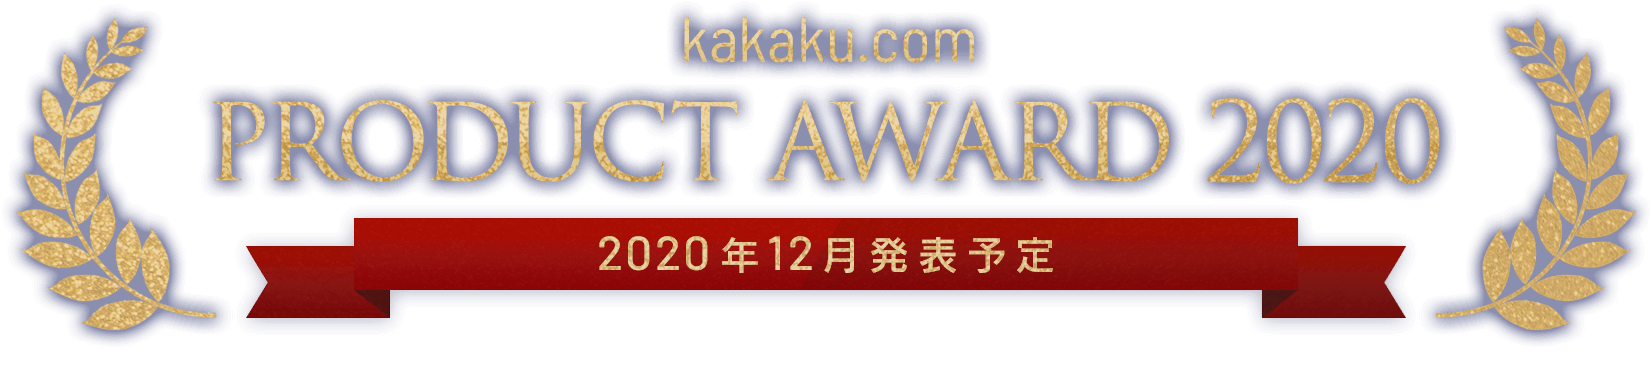 kakaku.com PRODUCT AWARD 2020 2020年12月発表予定